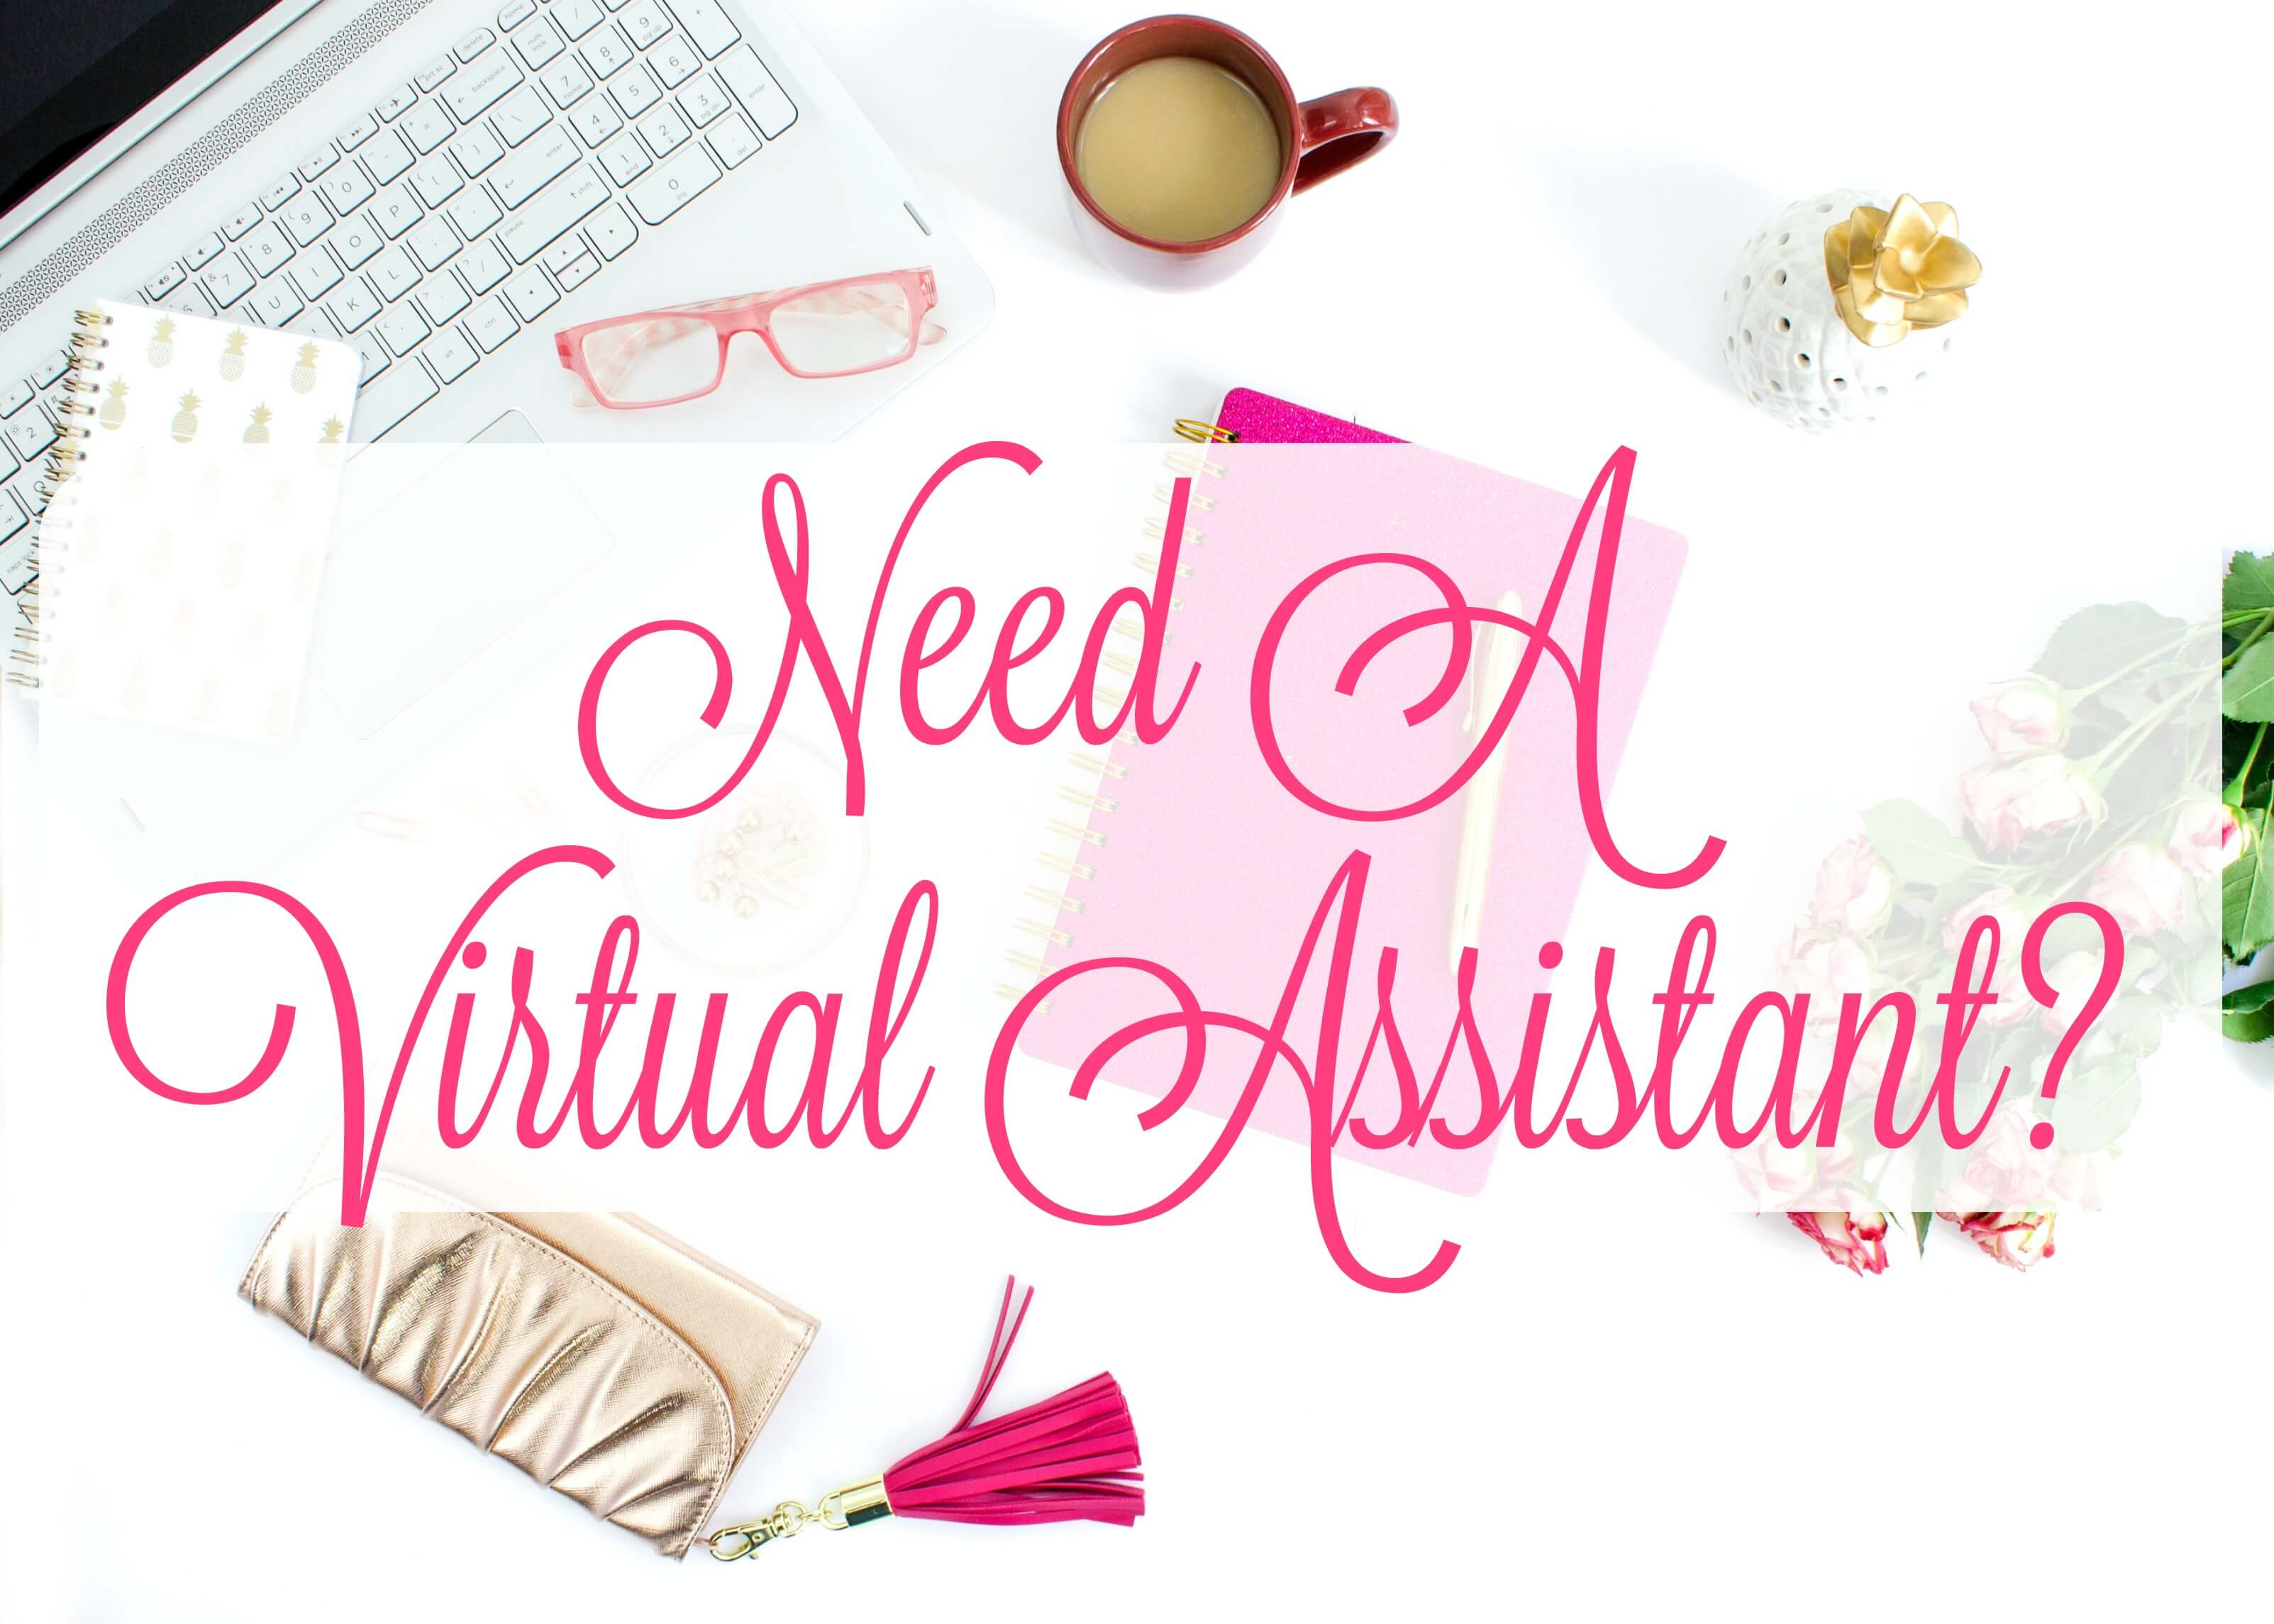 Hire me as your Virtual Assistant